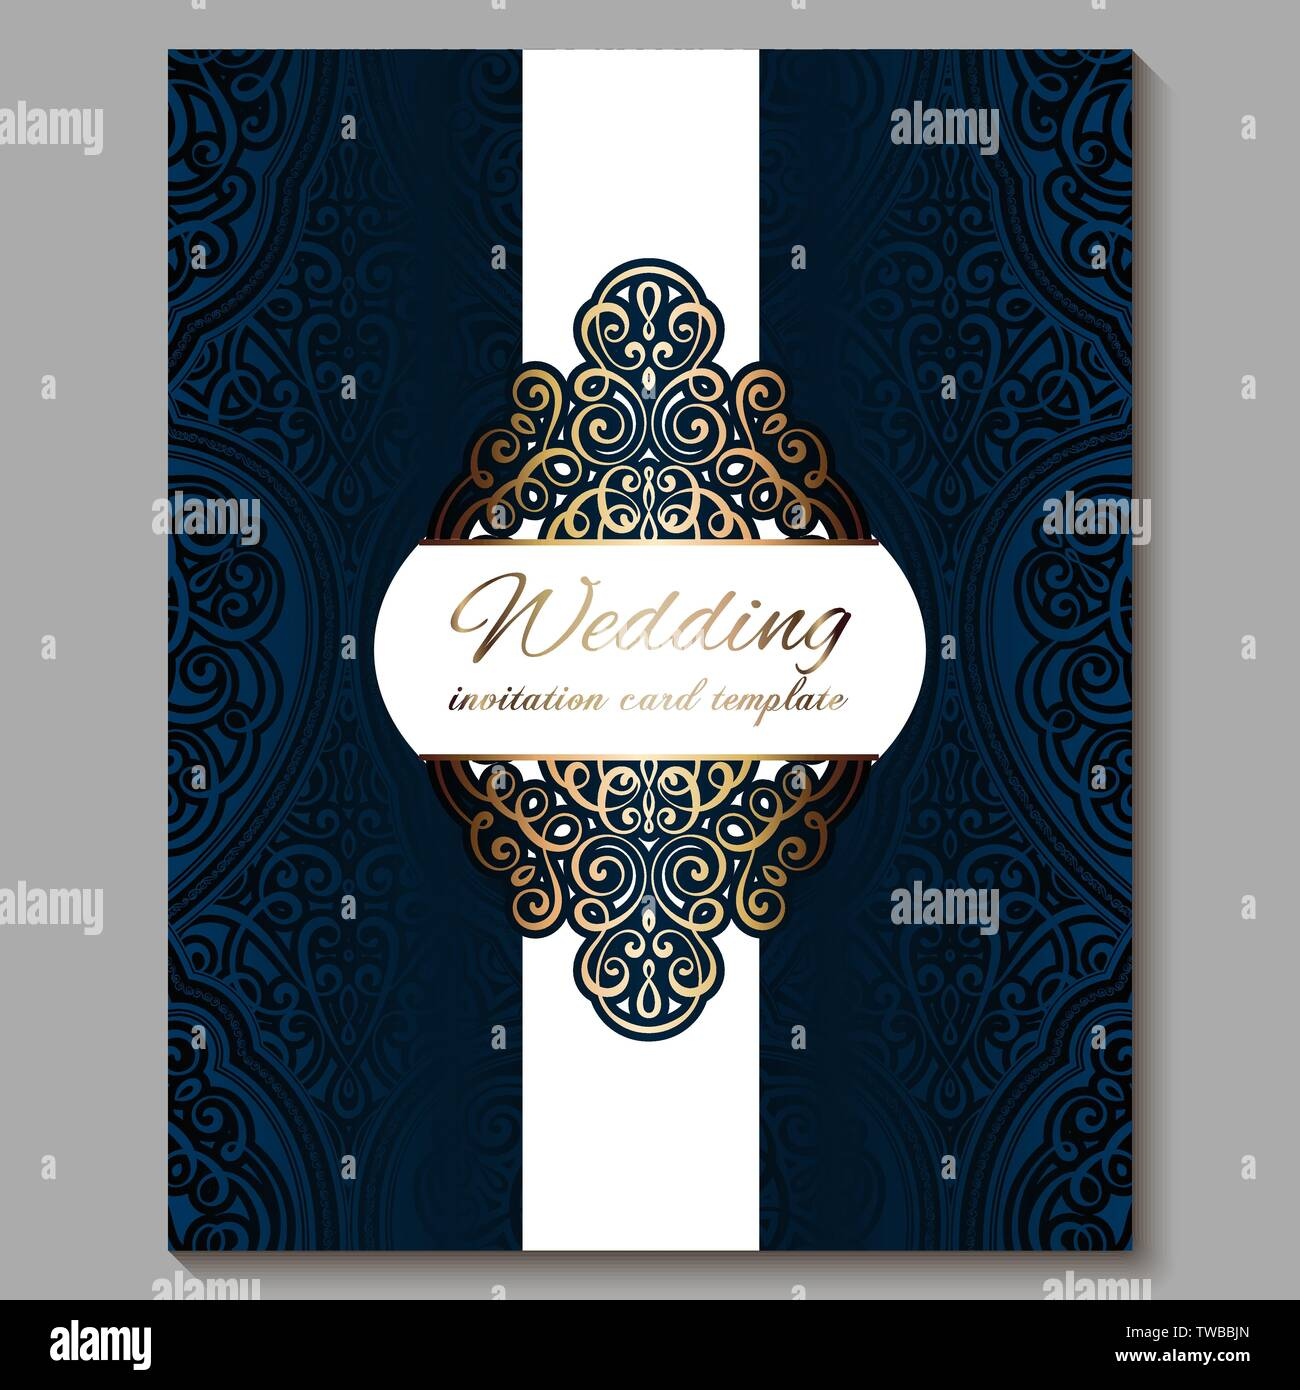 https www alamy com wedding invitation card with gold shiny eastern and baroque rich foliage royal blue ornate islamic background for your design islam arabic indian image256562173 html